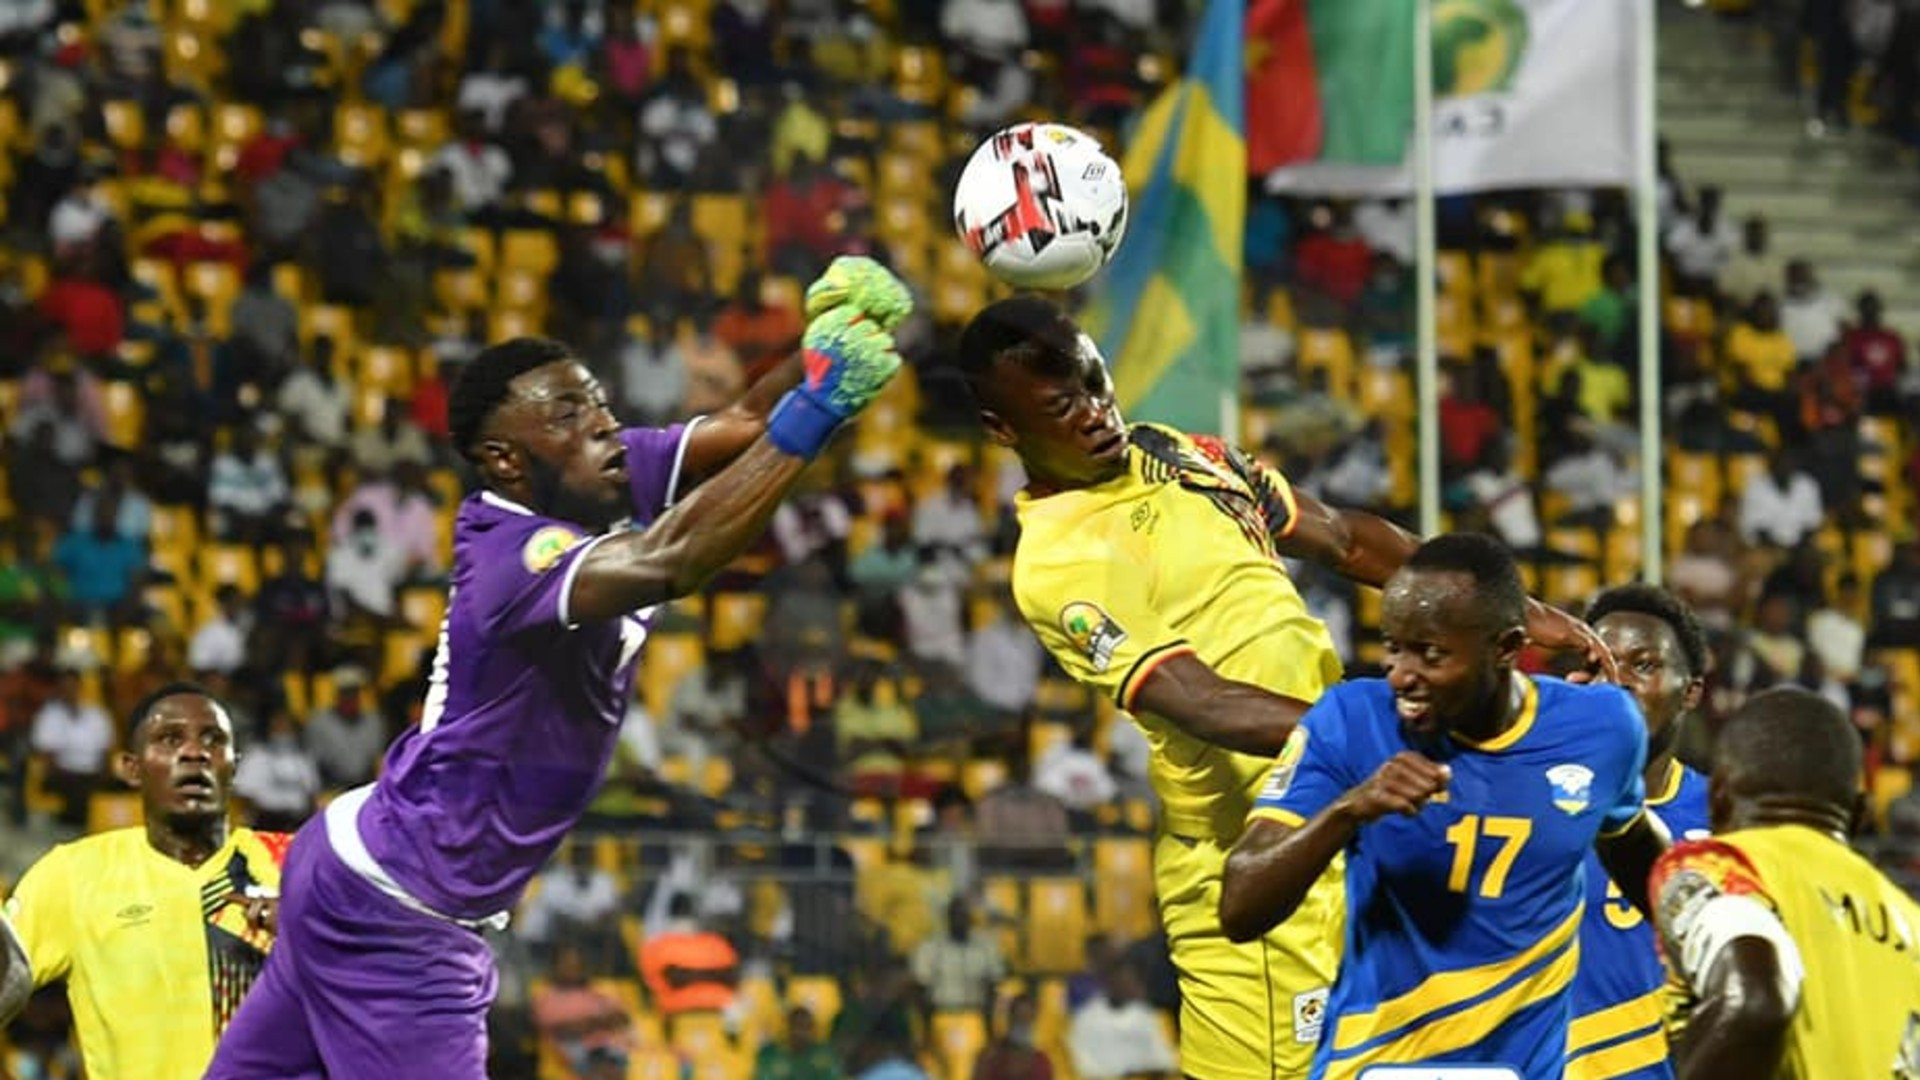 Uganda 0-0 Rwanda: Spoils shared by East African outfits in Cameroon